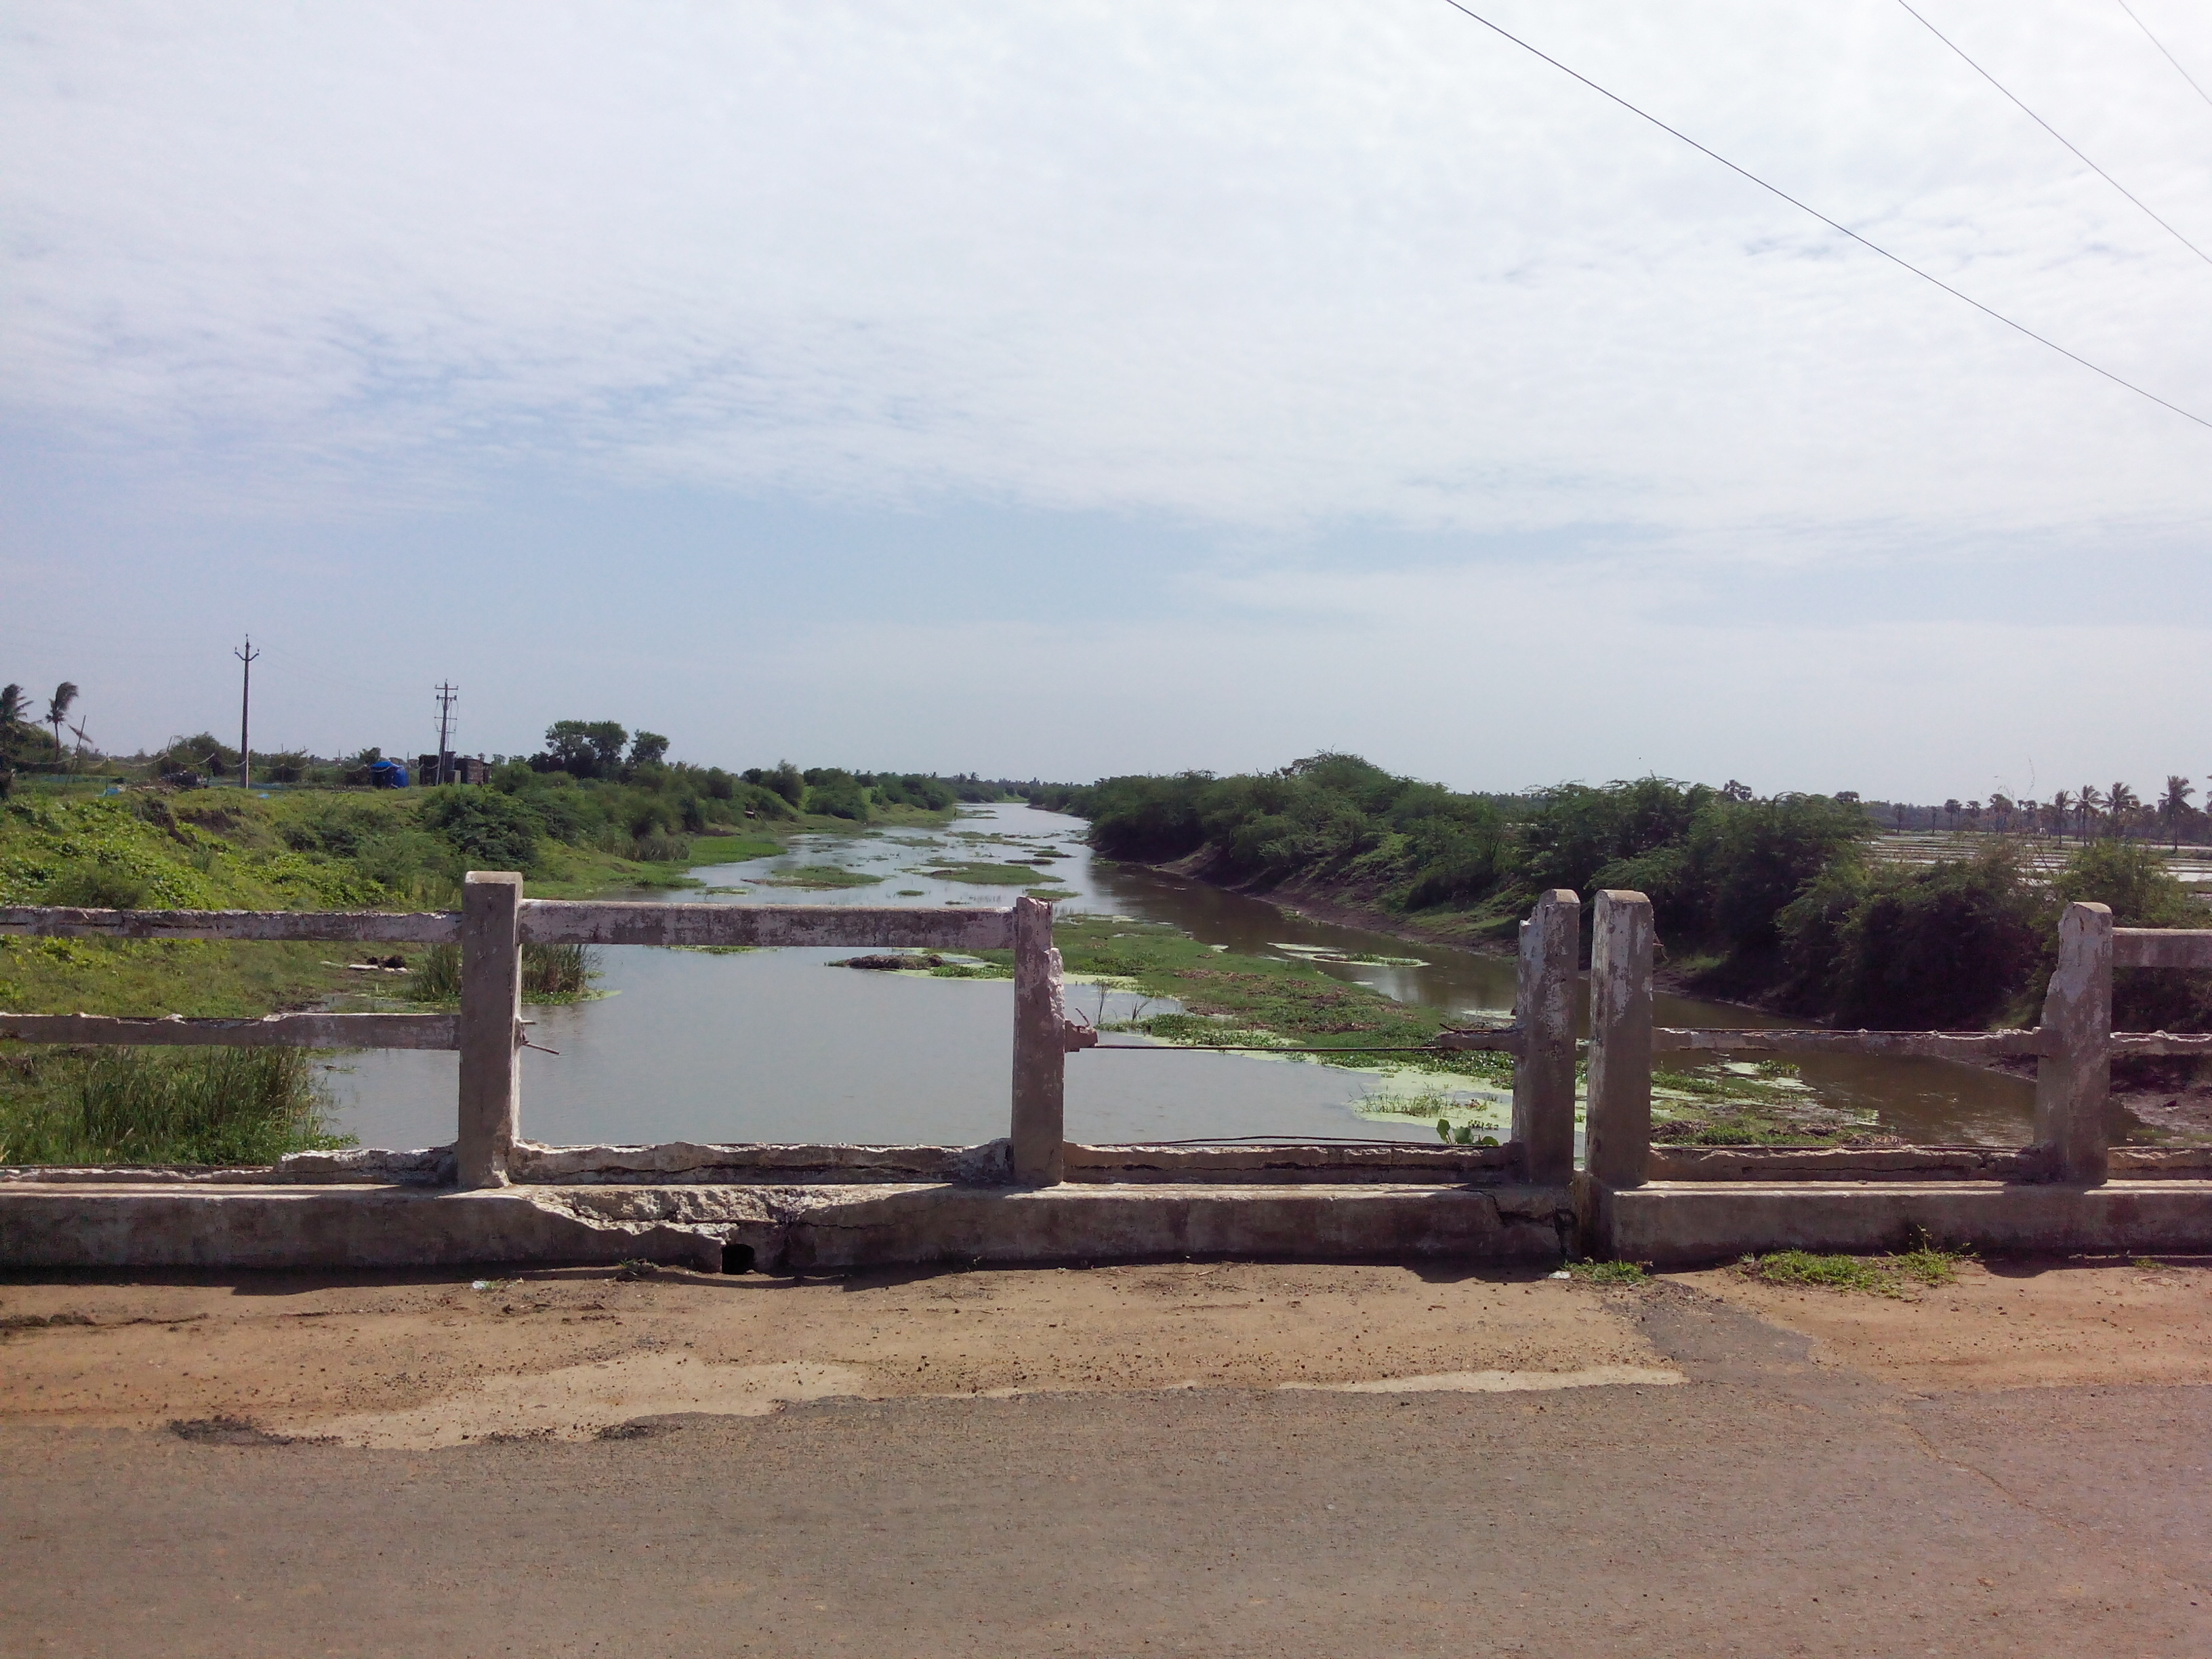 Putlacheruvu Main Road Bridge - Pedda Muruki Kaluva Canal View